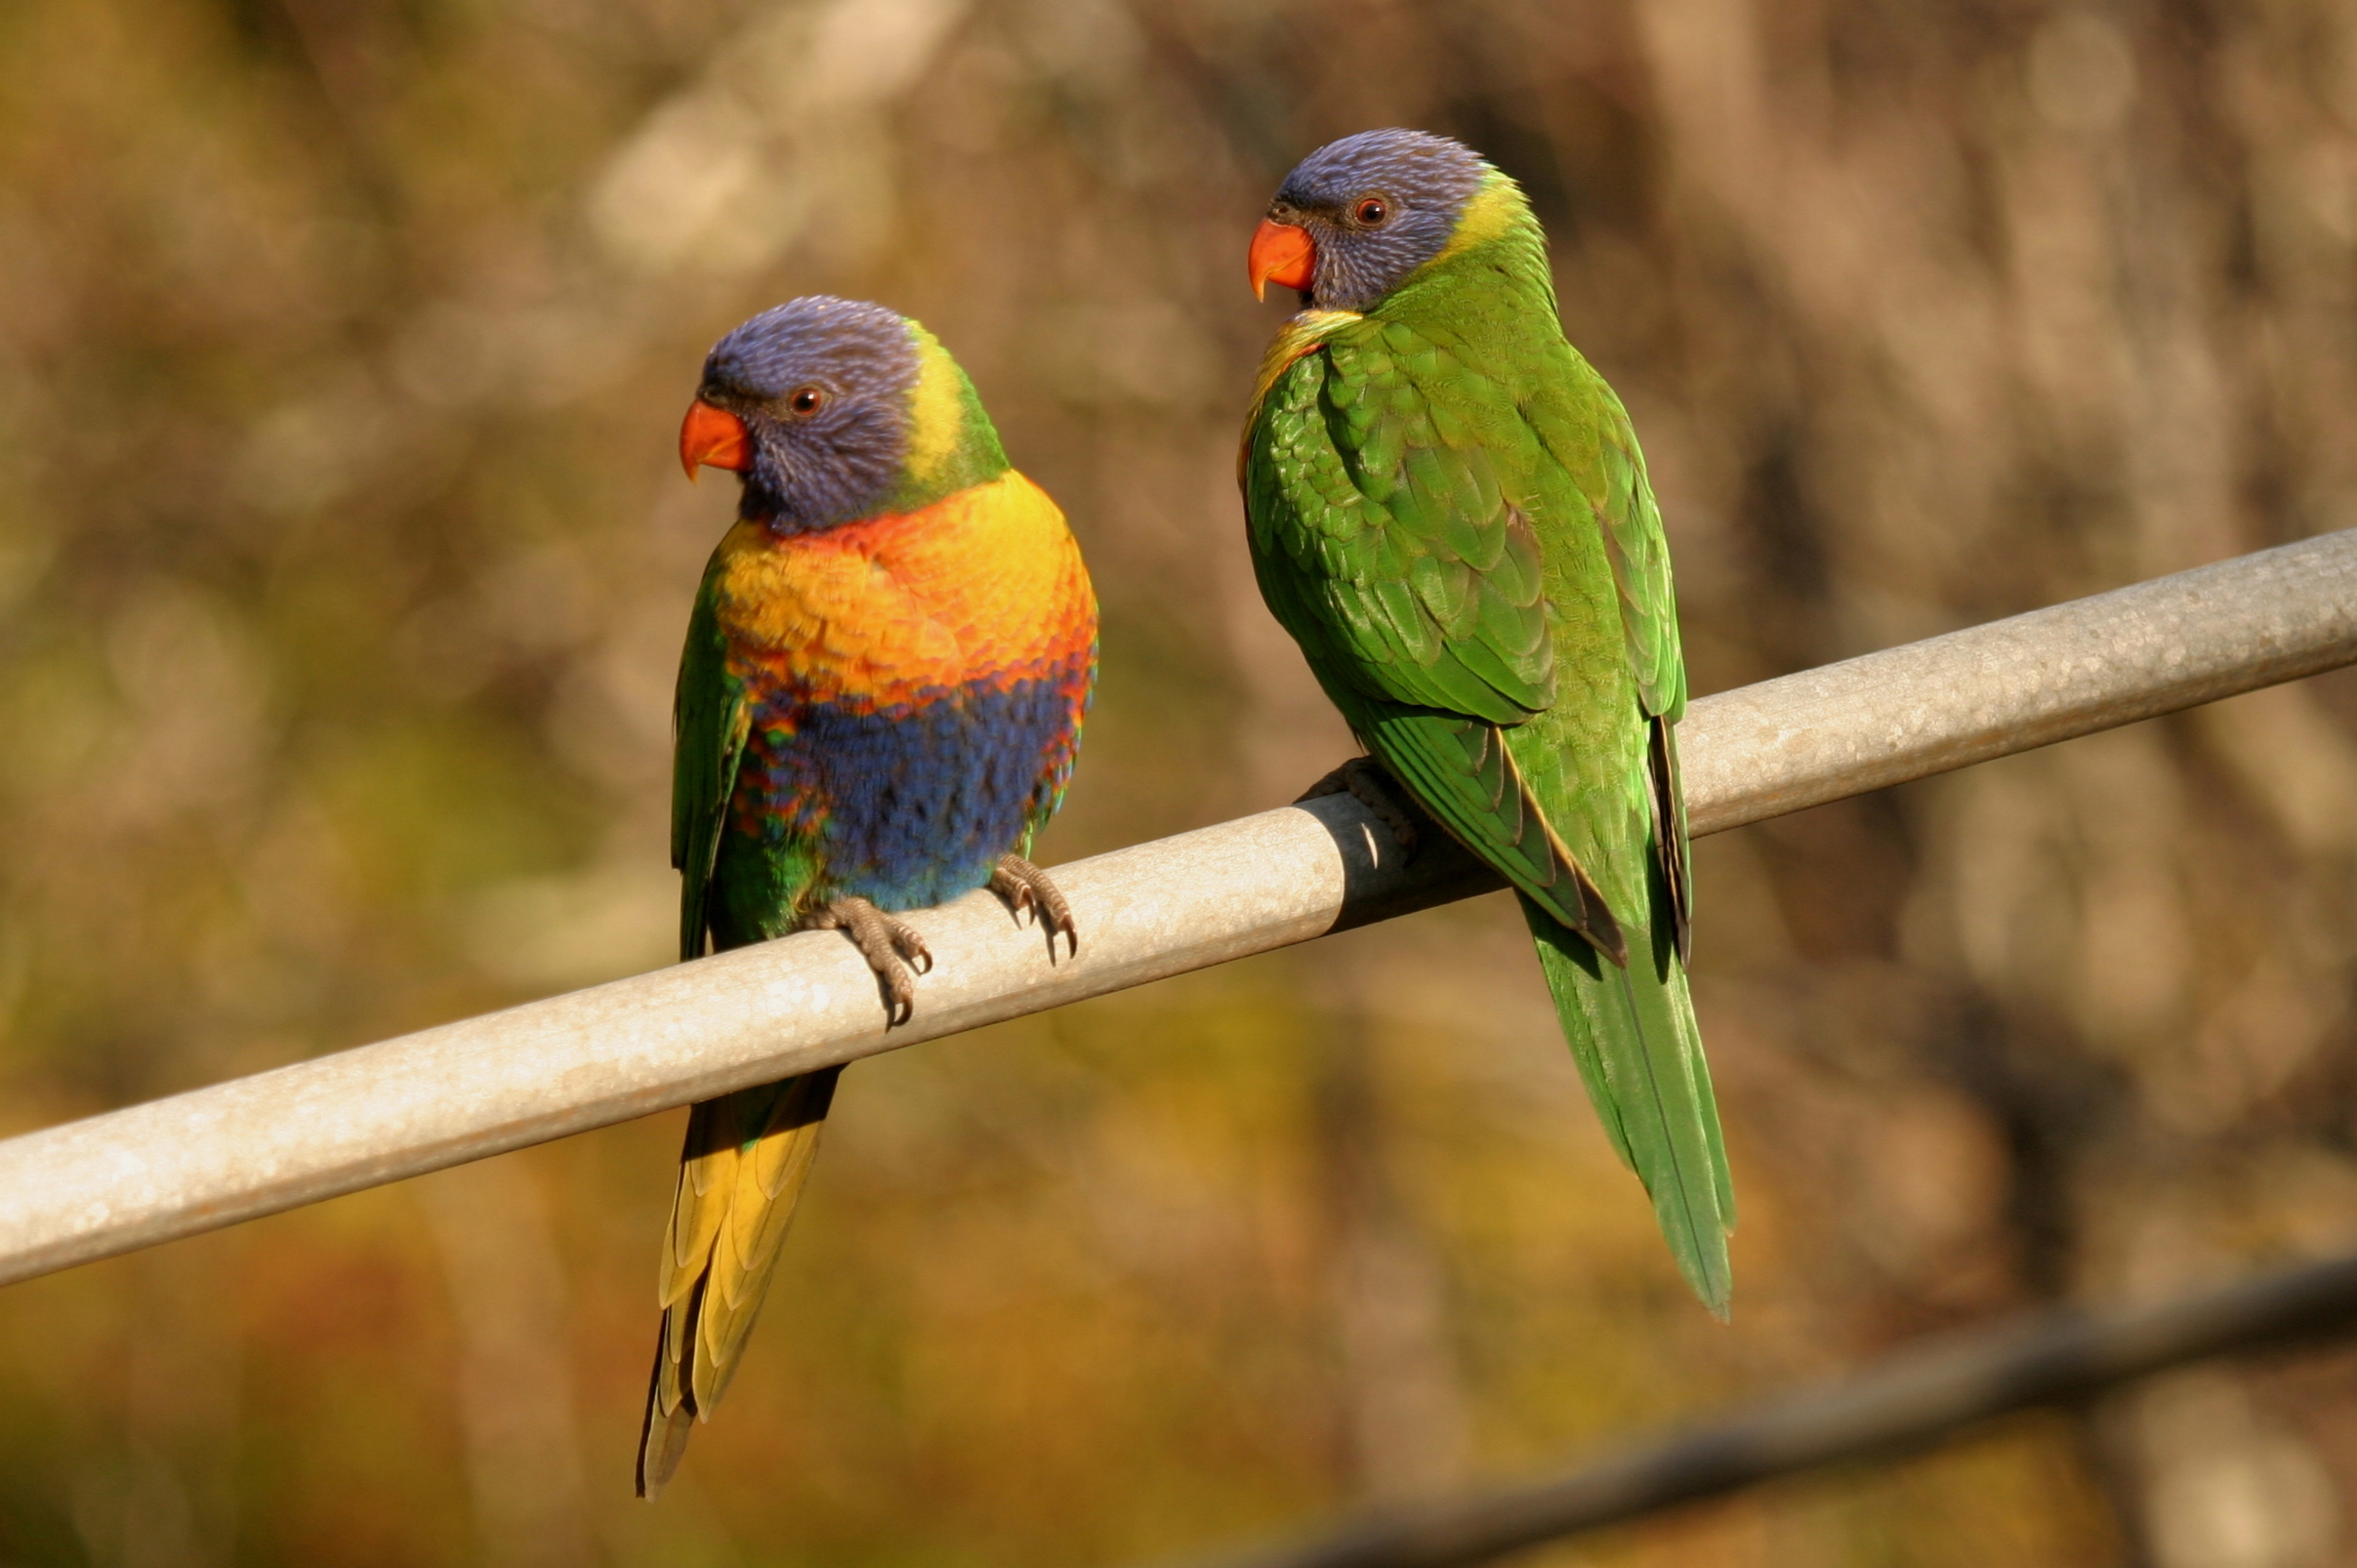 Rainbow Lorikeet | BIRDS in BACKYARDS